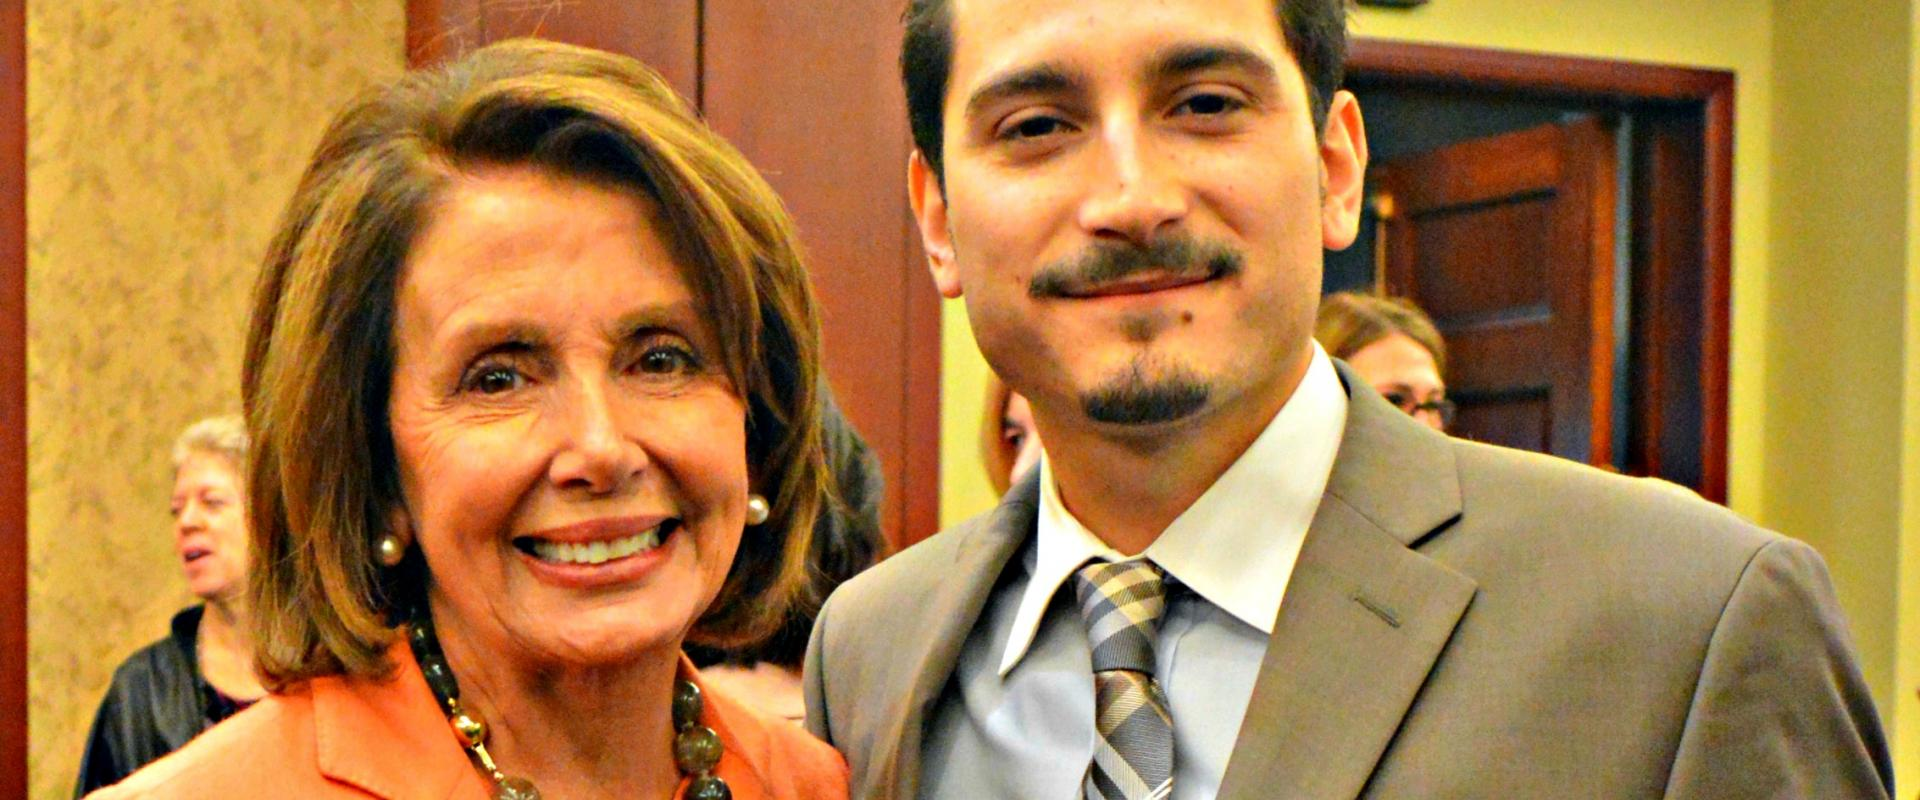 "Congresswoman Pelosi thanks her witness, San Franciscan Maverick Bishop, for his courageous testimony on overcoming adversity and severe economic barriers at a hearing on ""The Failure of Trickle Down Economics in the War on Poverty."""